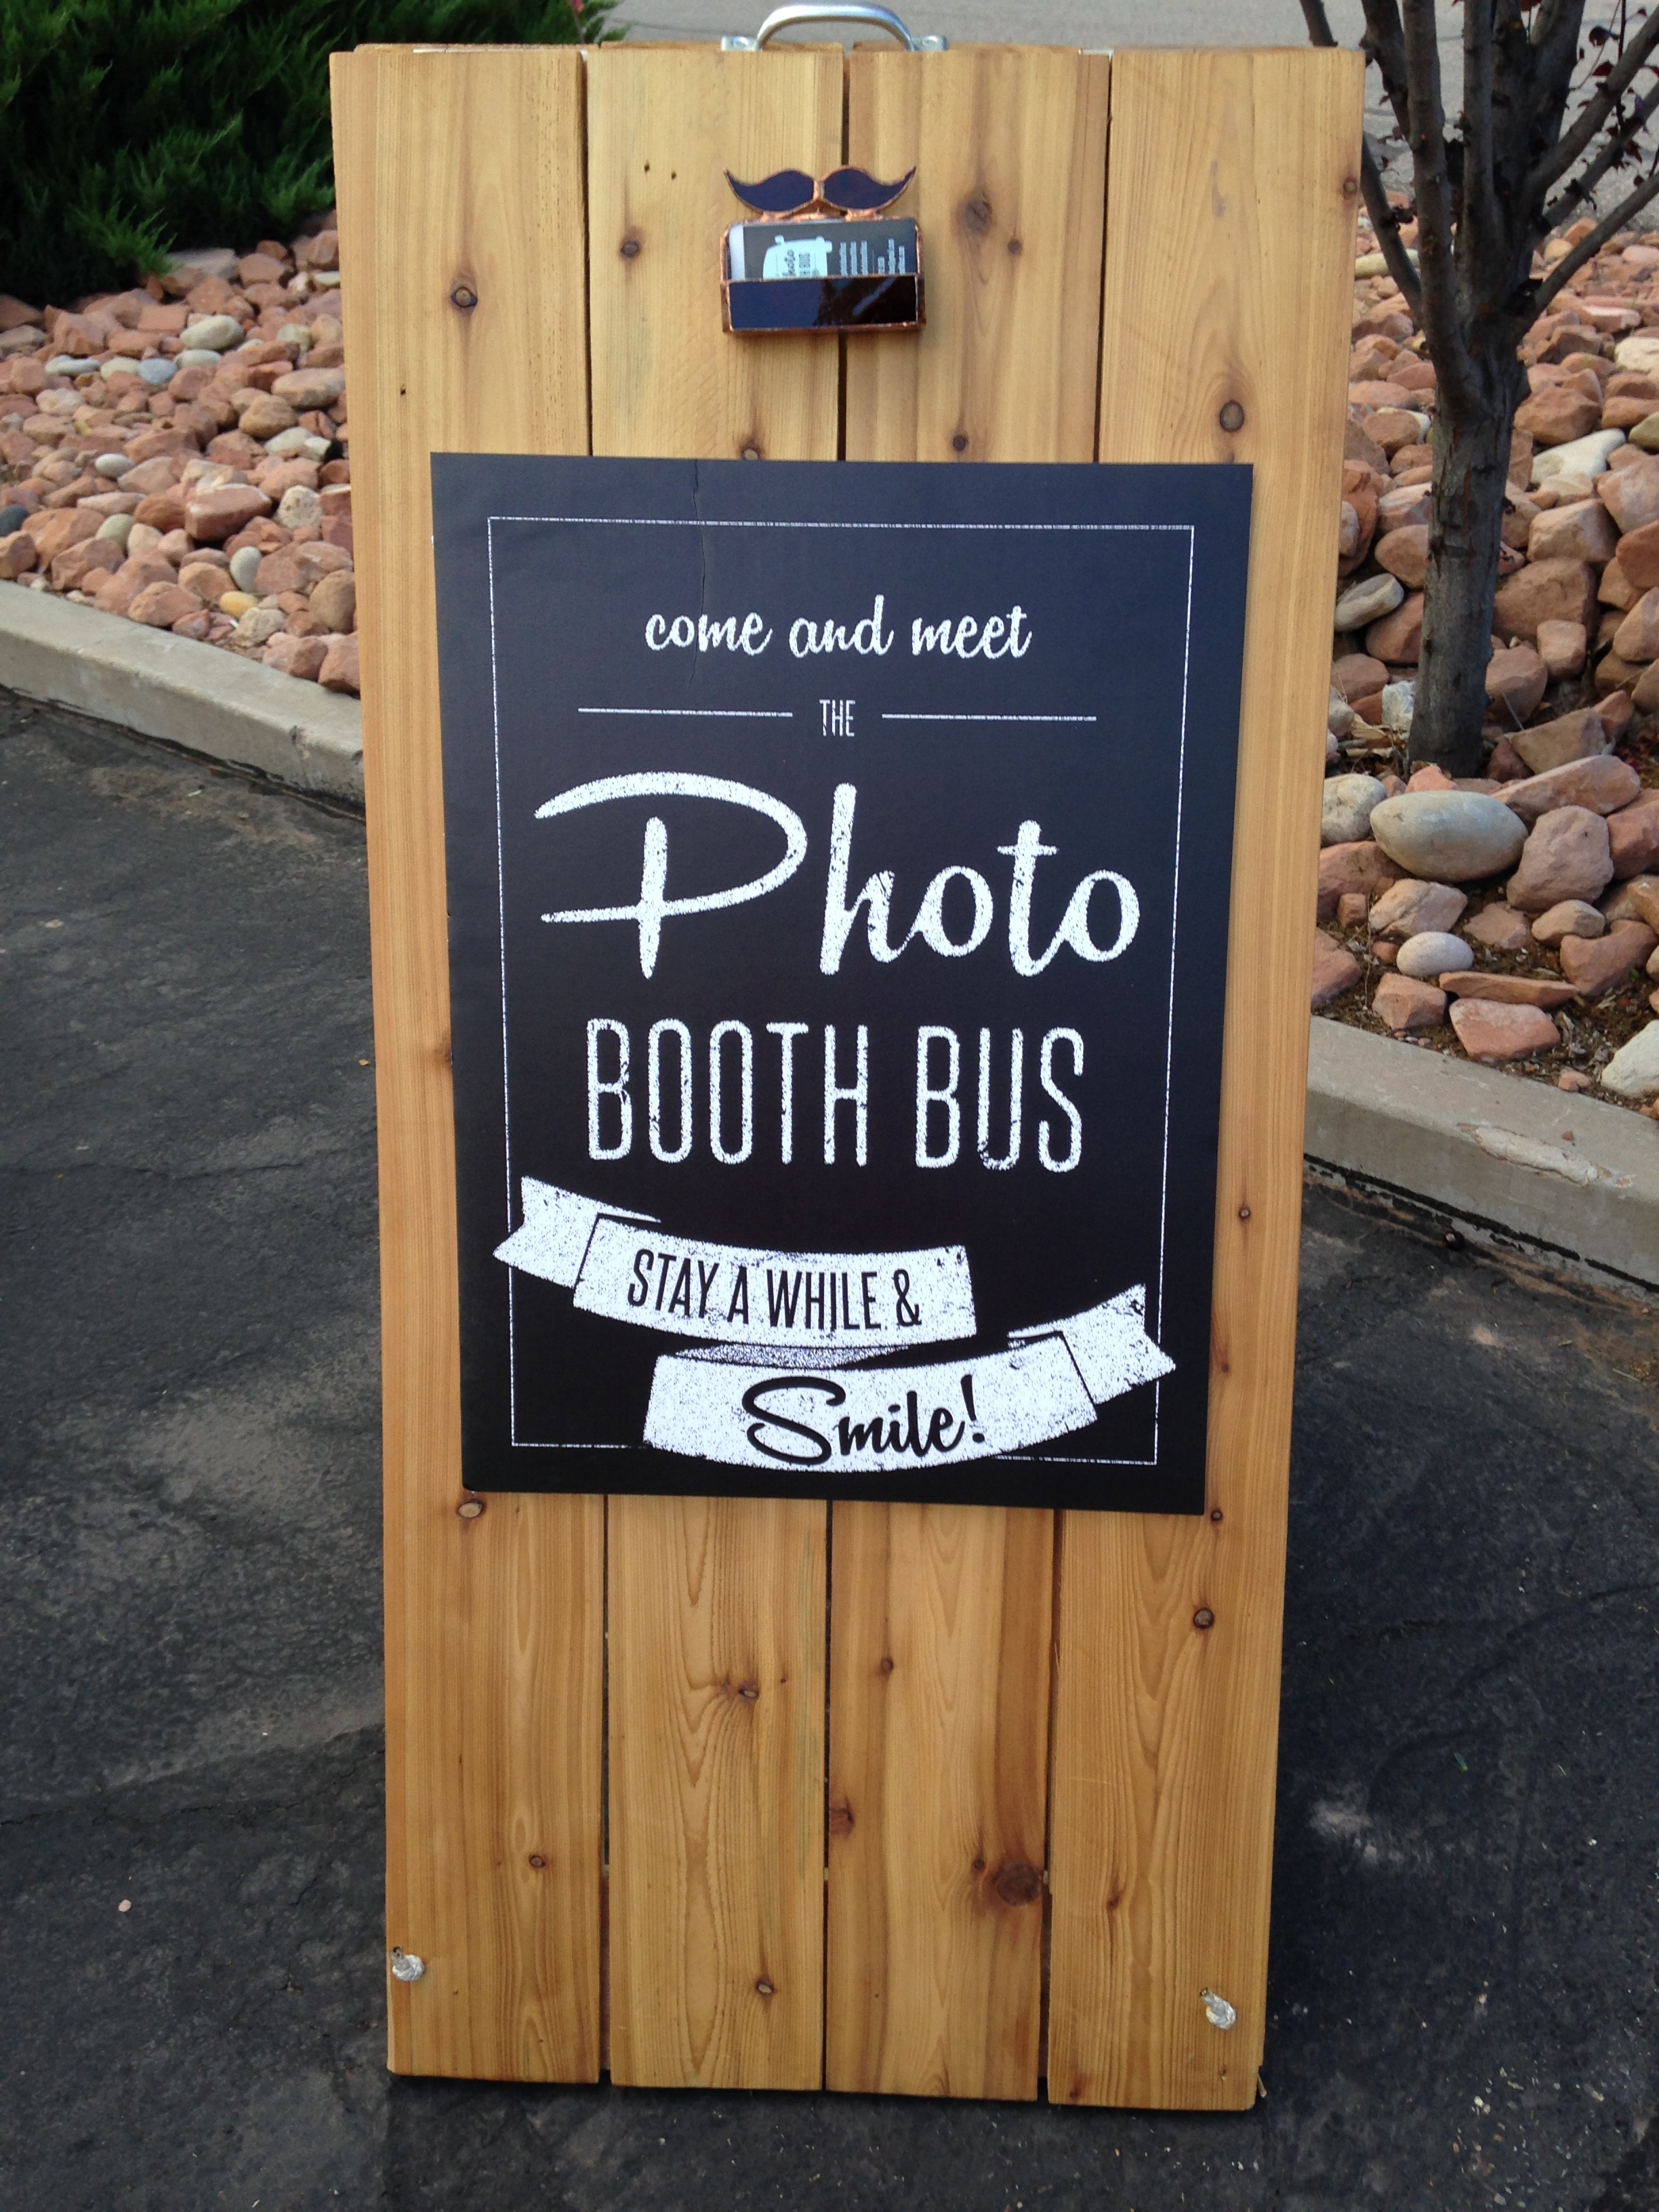 Photo Booth Bus signage.